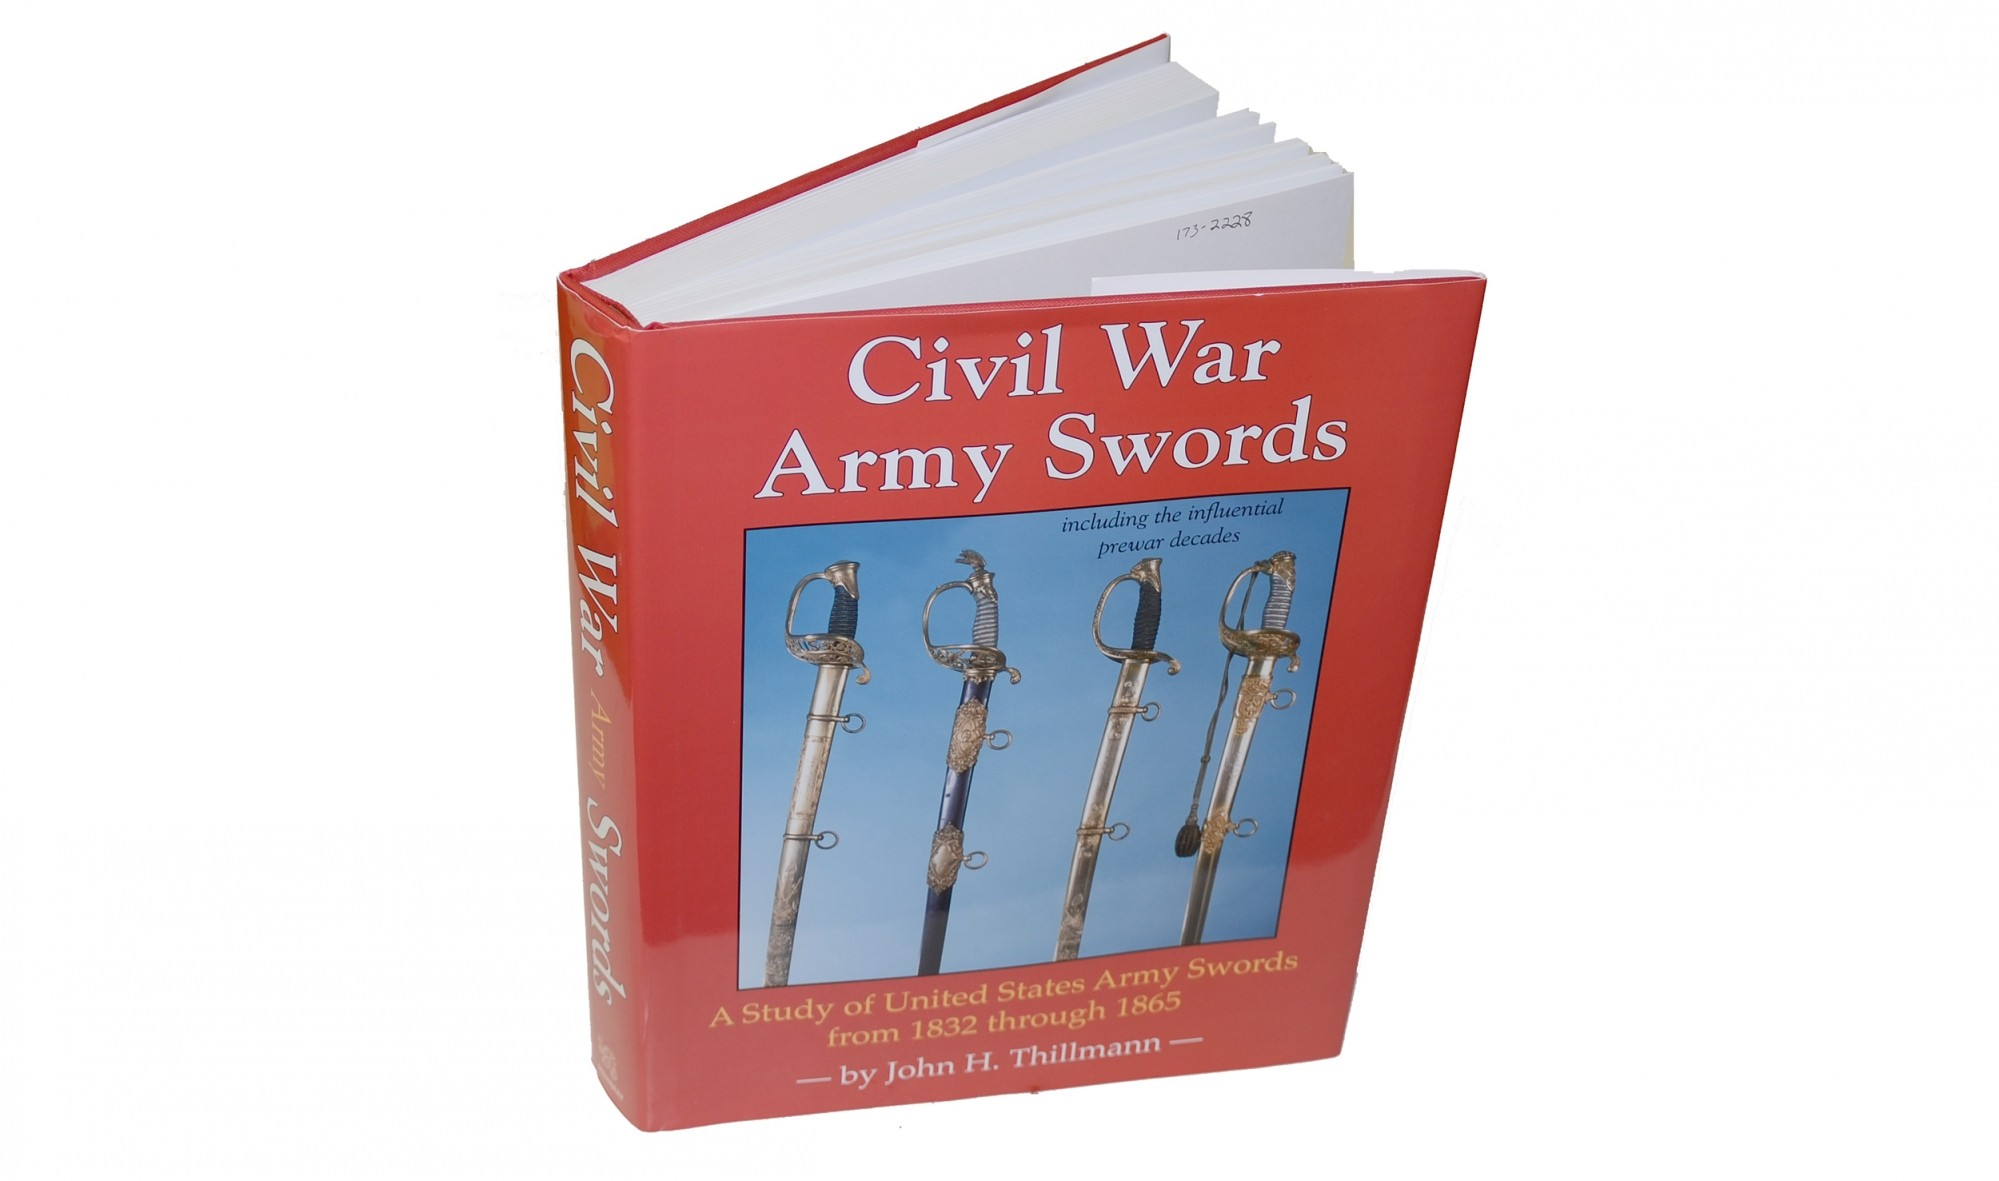 <I>CIVIL WAR ARMY SWORDS</I> BY JOHN H. THILLMANN